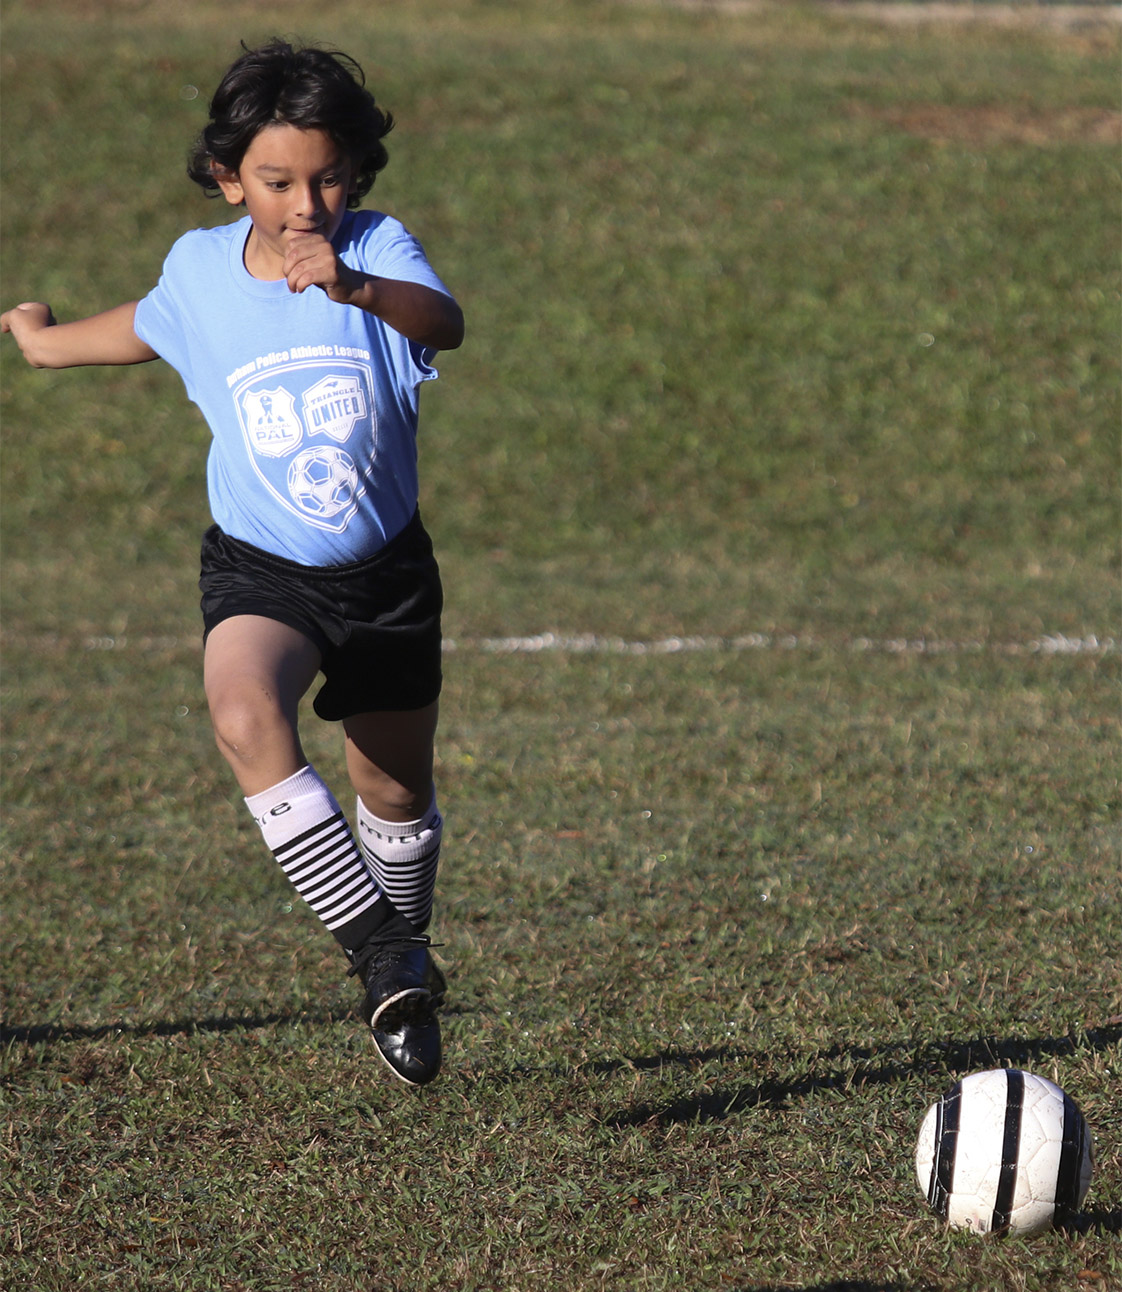 A player on the Eastway Elementary School team makes a move for the ball in their game against Merrick-Moore Elementary School on Saturday, Nov. 5. (Staff photo by Brenna Elmore)